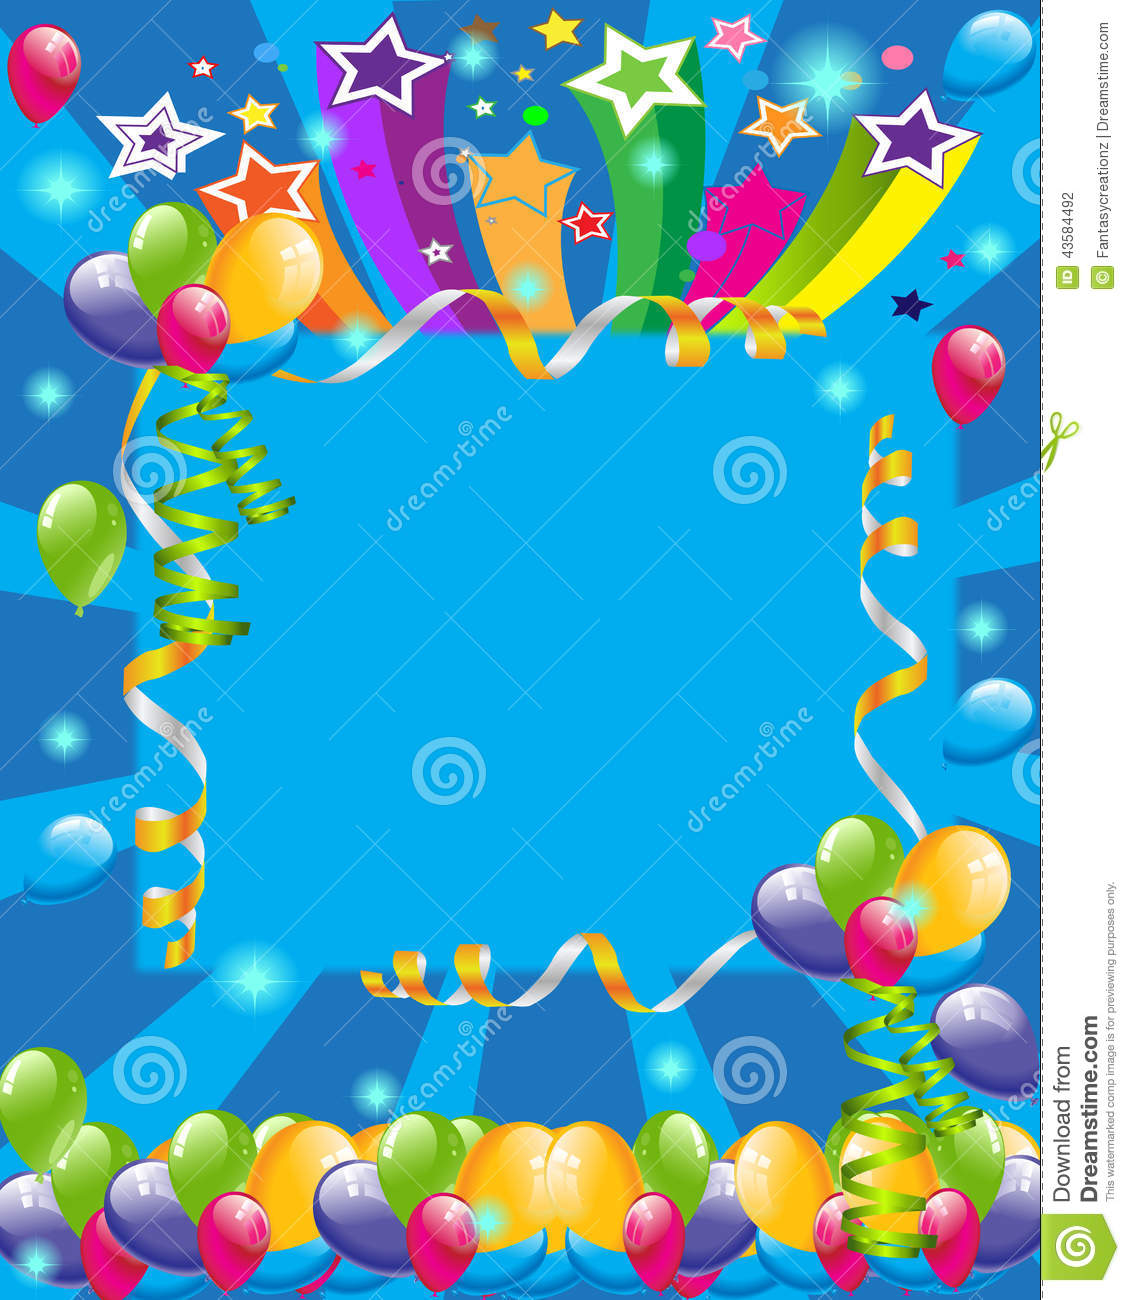 party invitation stock illustration illustration of background